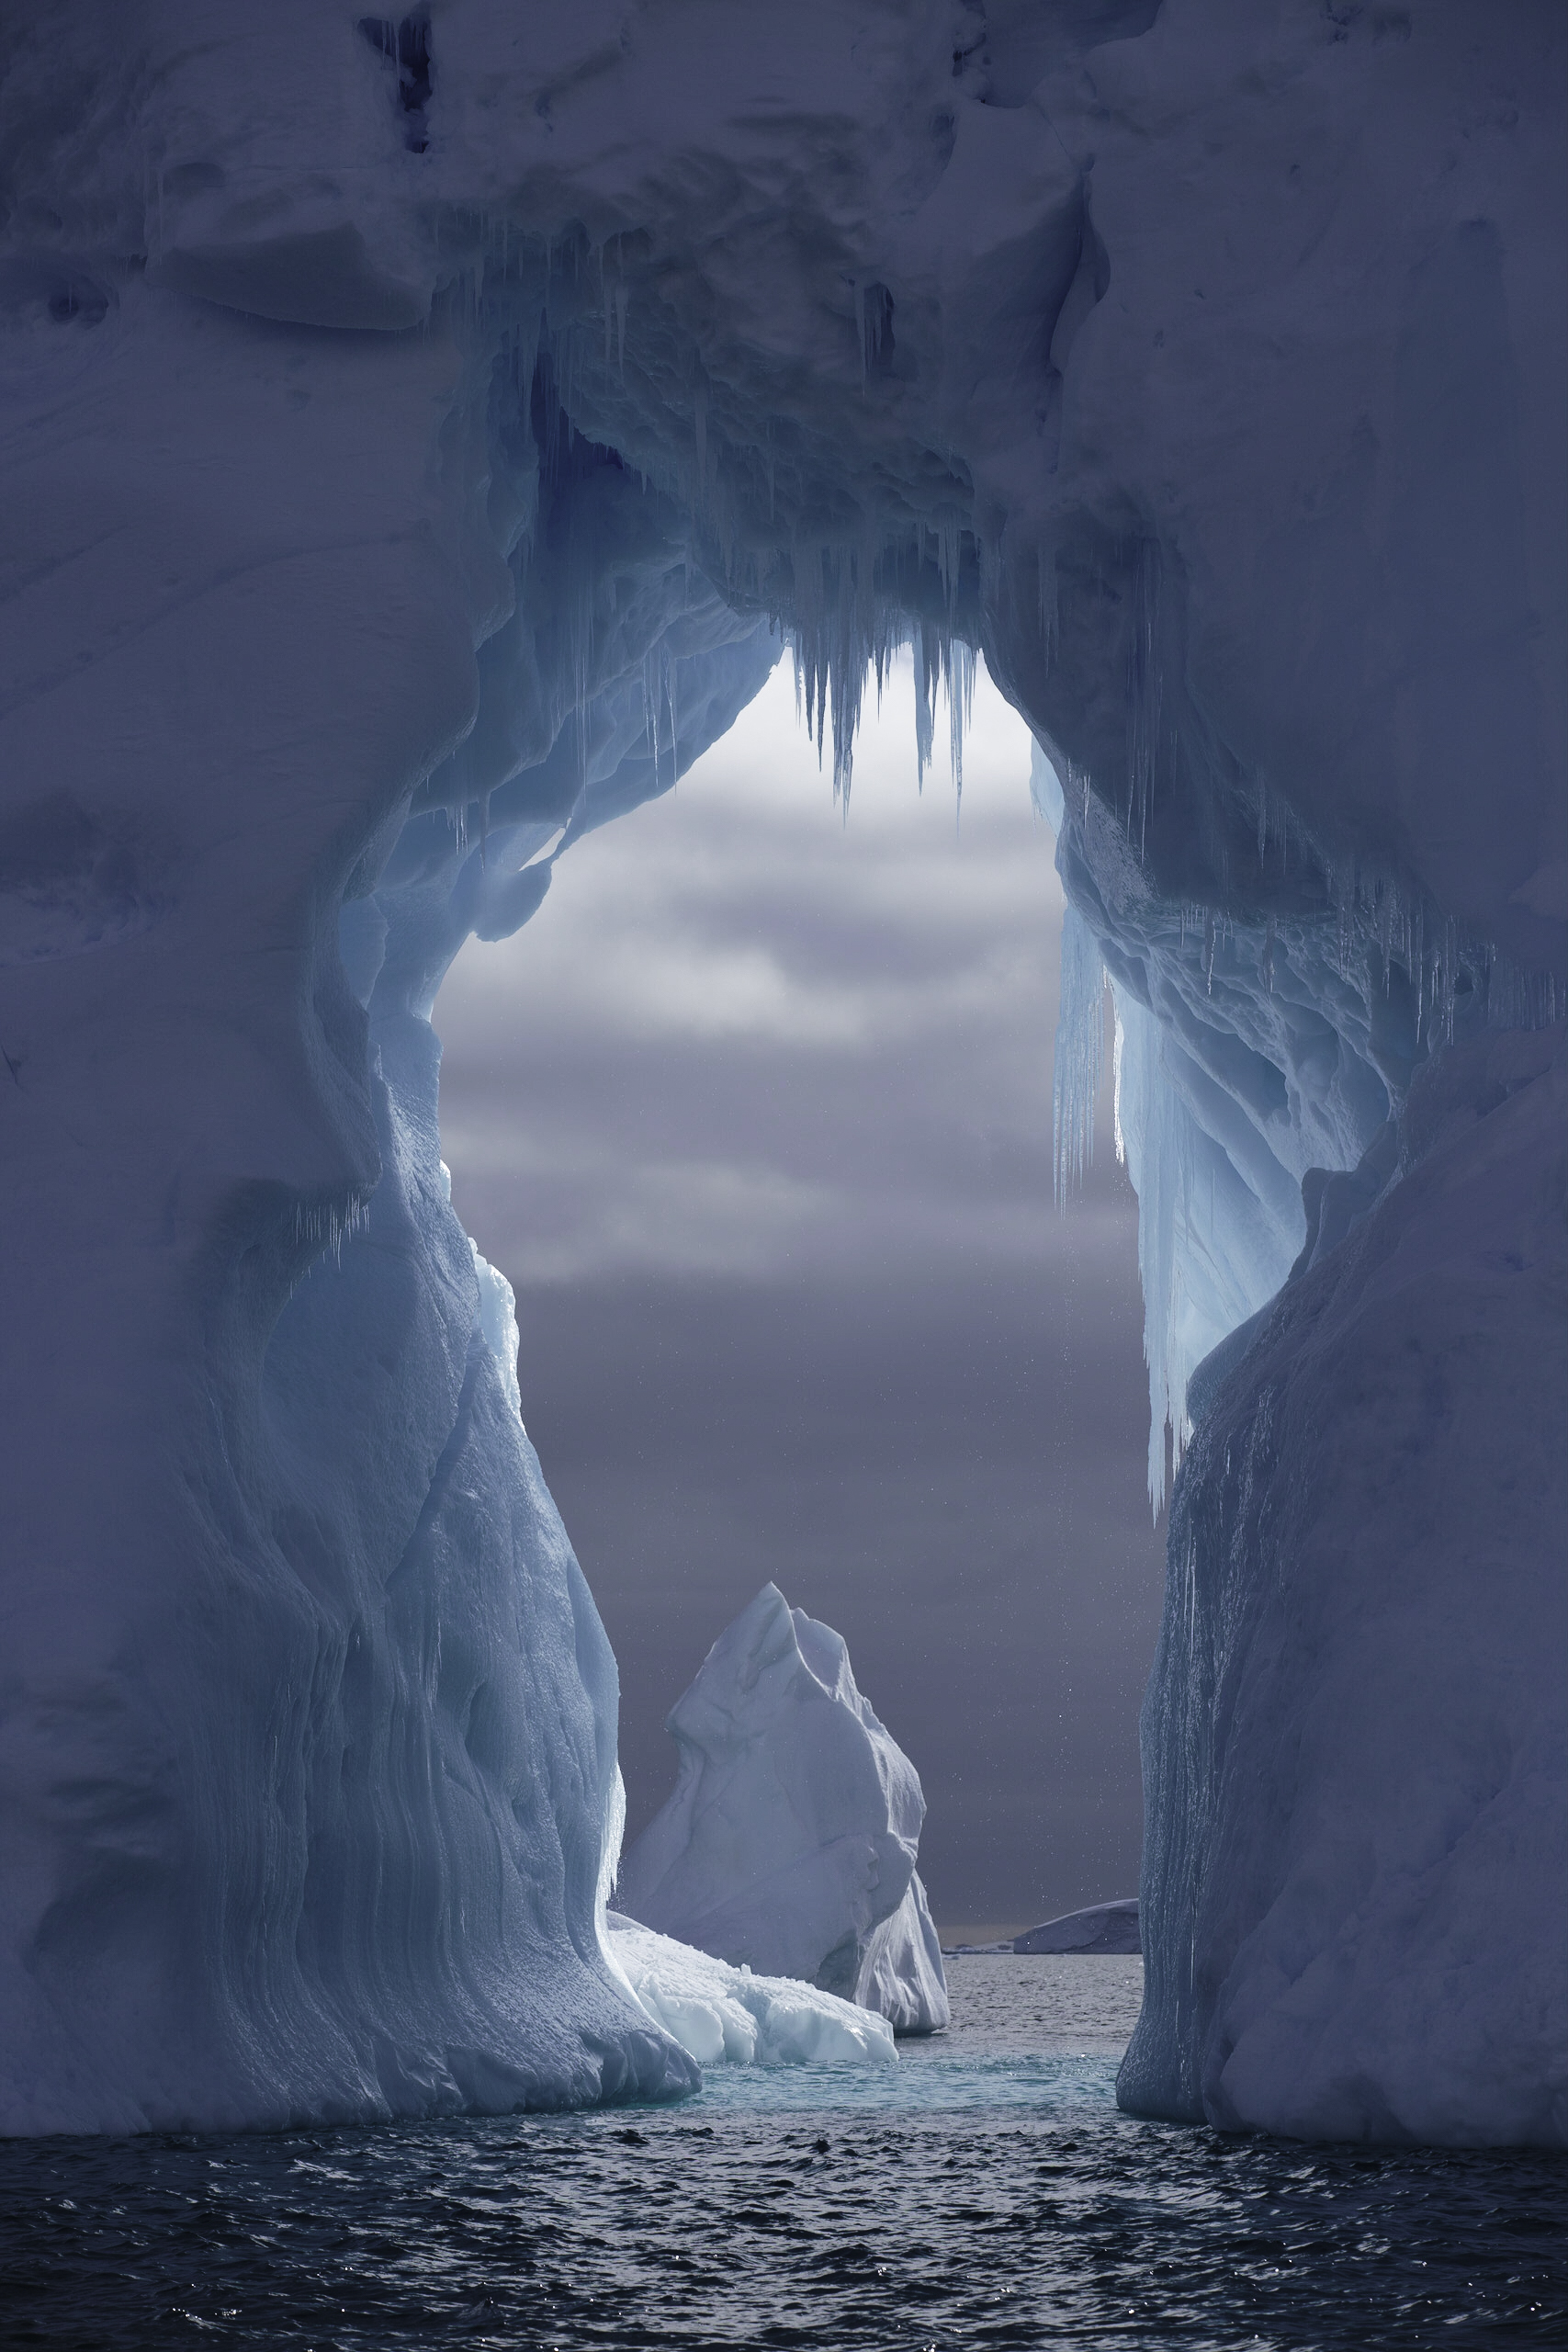 A massive ice arch is formed in a floating iceberg —large enough to drive a boat through.